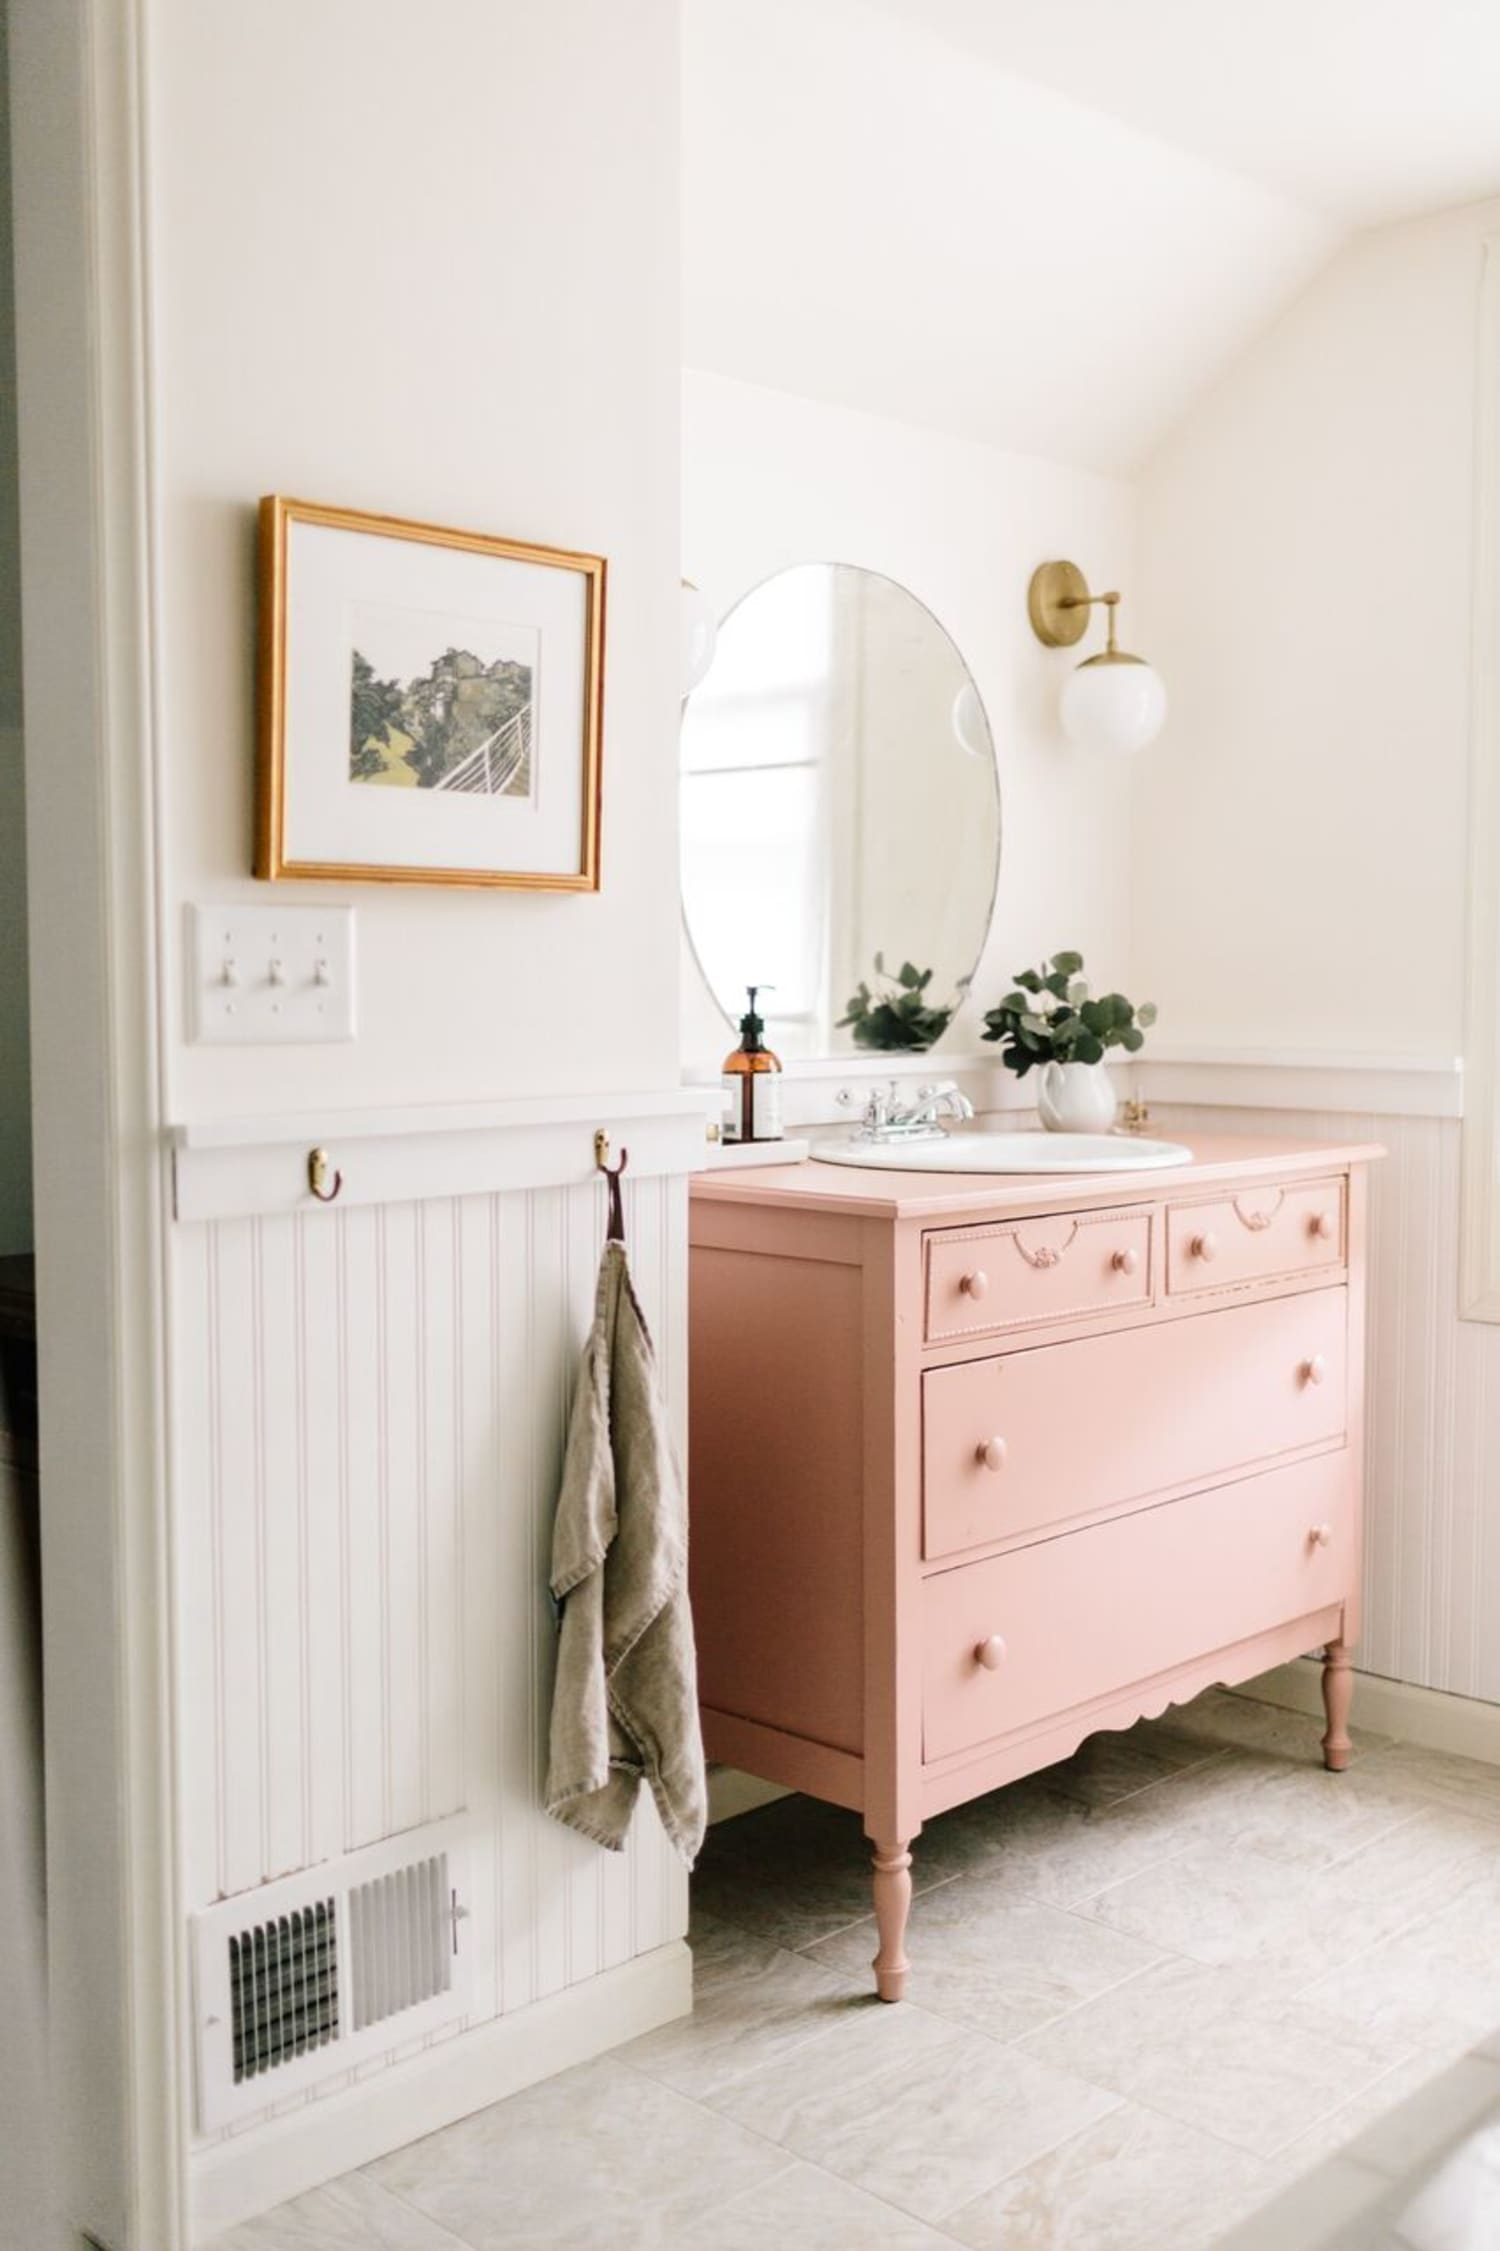 Image of: Bathroom Sink Consoles Made From Vintage Dressers Photos Ideas Apartment Therapy